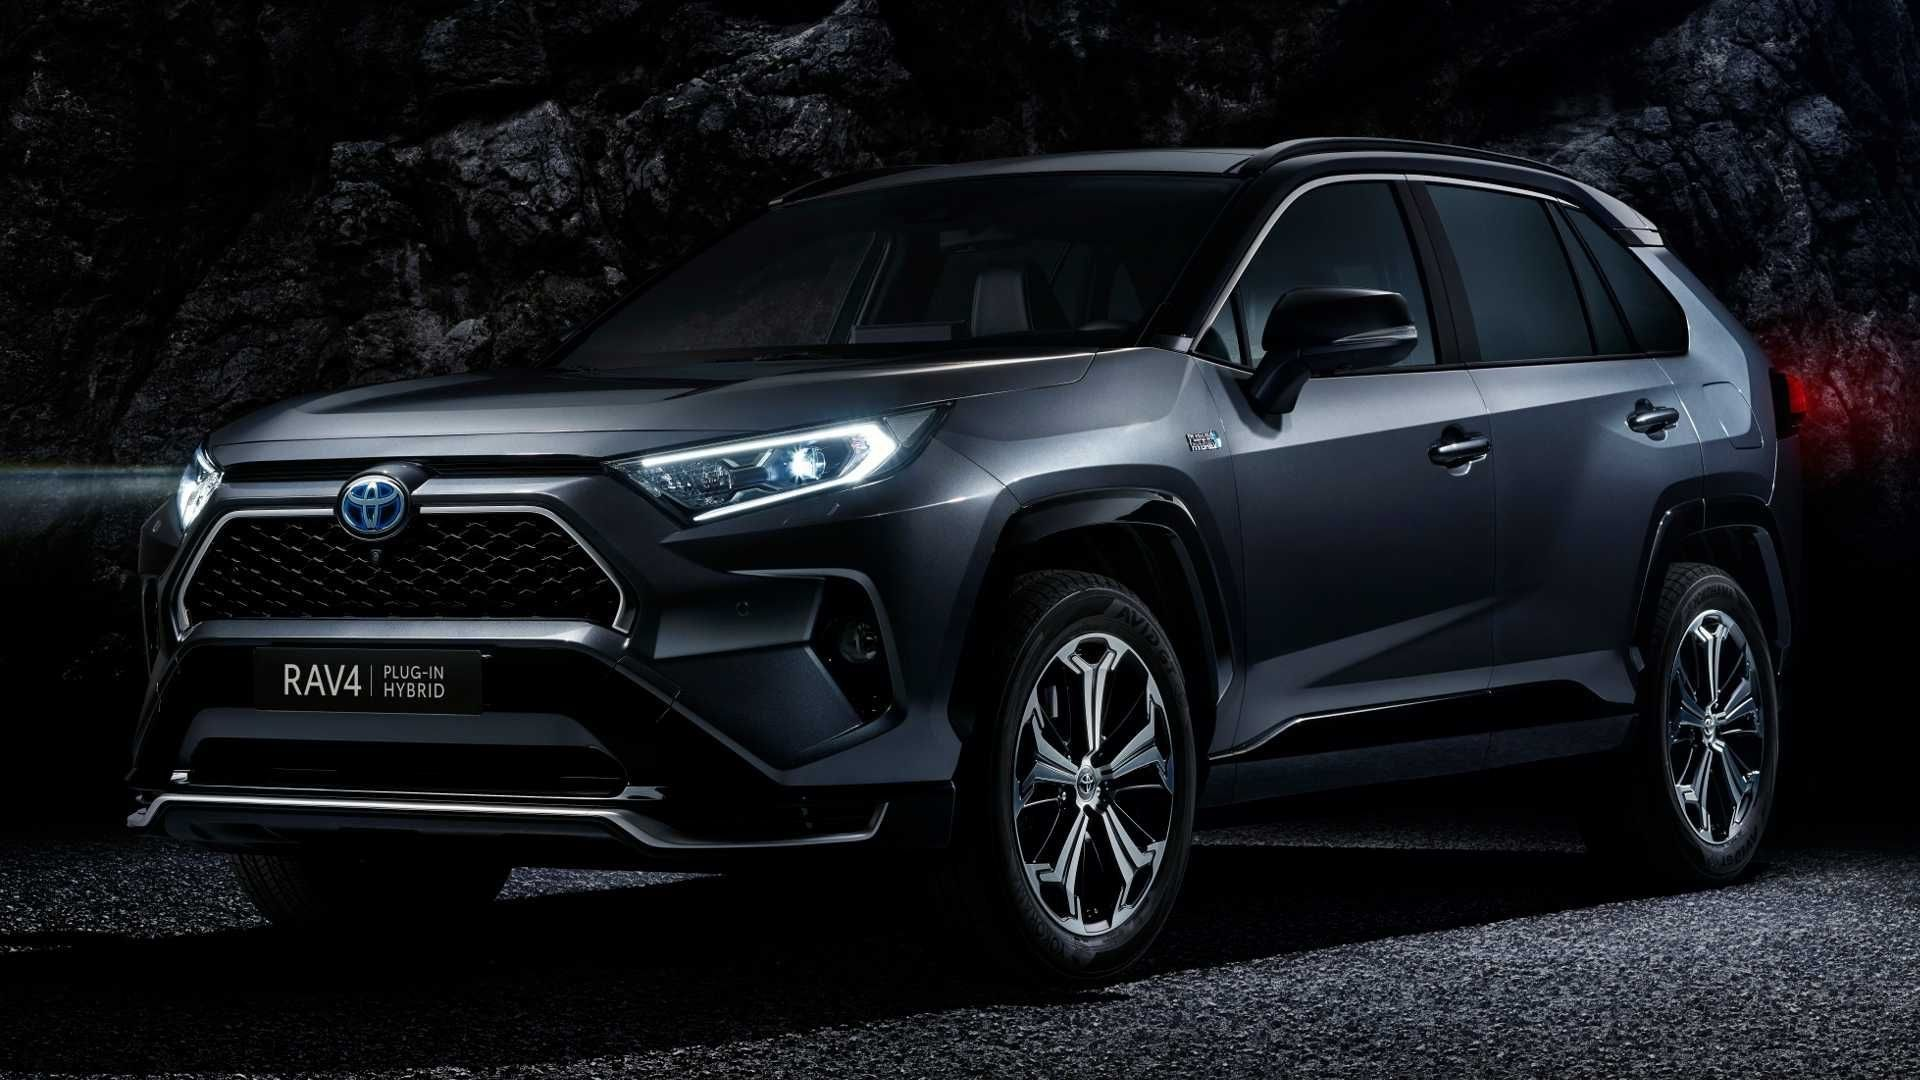 2021 toyota rav4 plug-in hybrid first drive review: the perfect non-ev - business insider